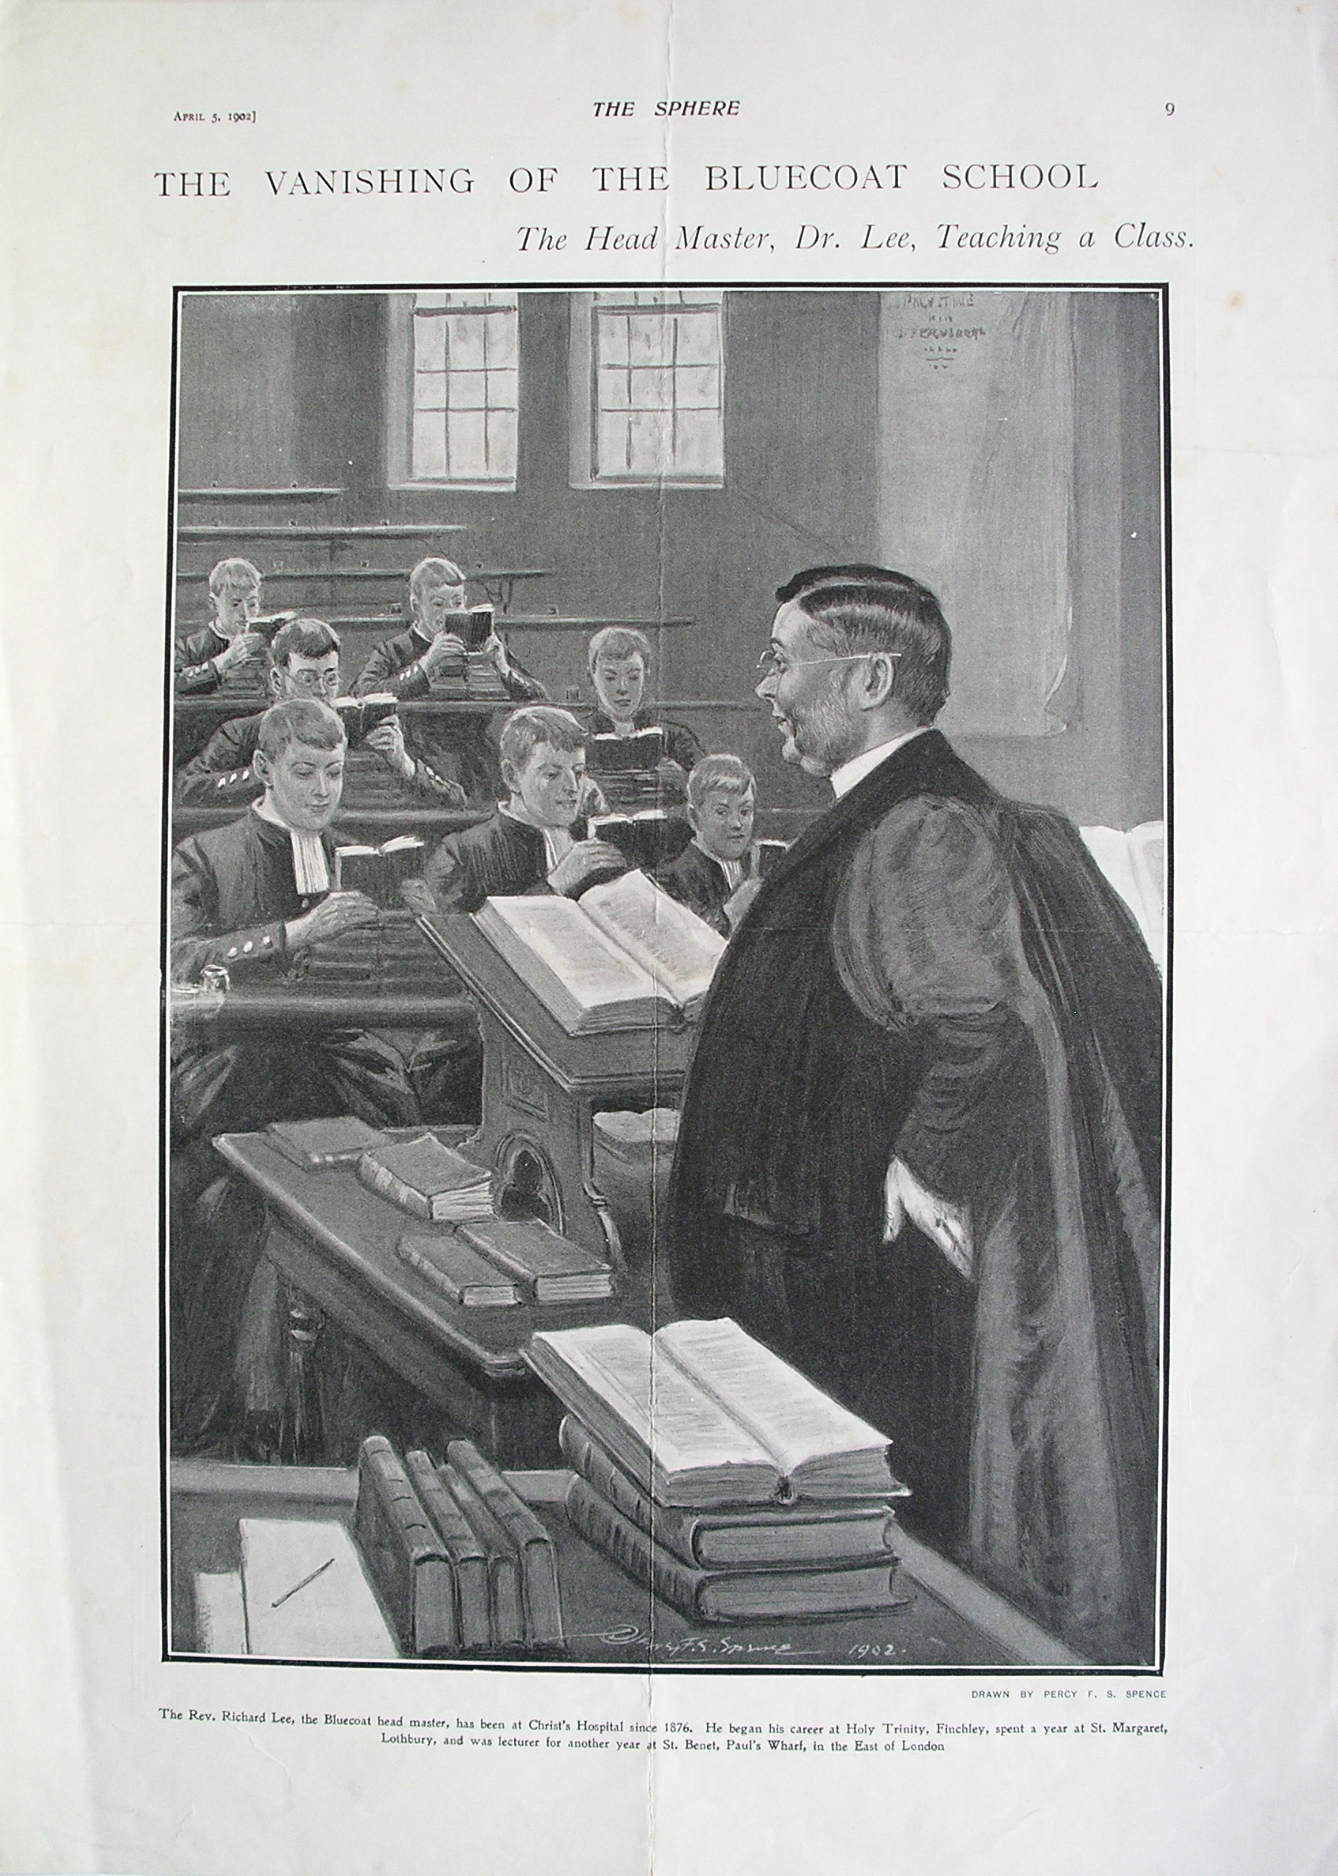 The Head Master teaching in 1902